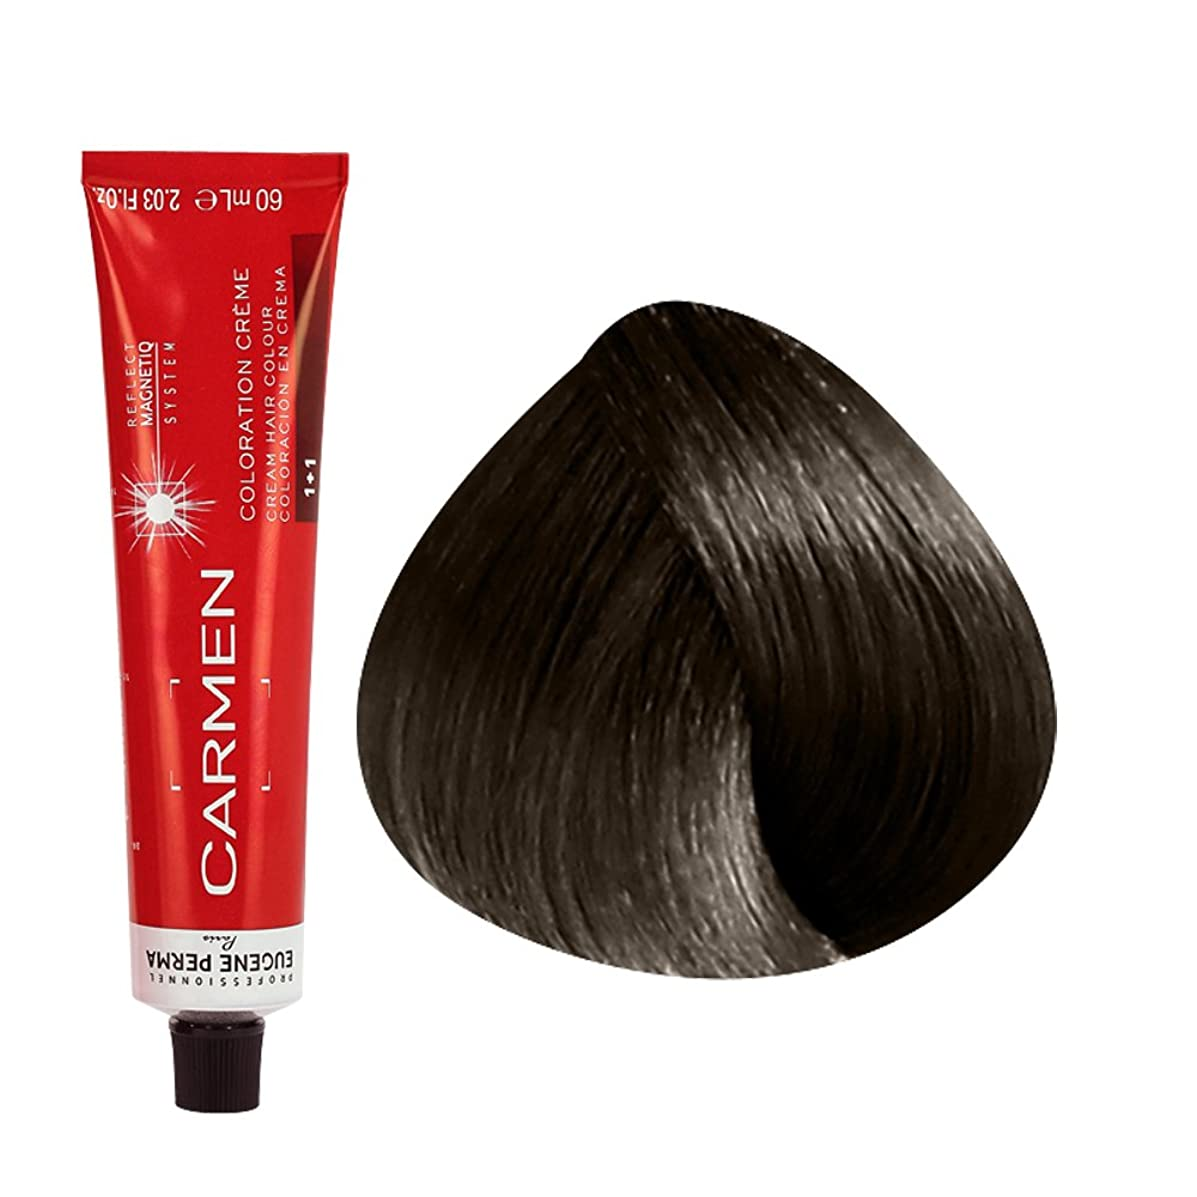 Carmen Ultime by Eugene Perma - Cream Hair Color - Size: 2.03 Fl. Oz. Tube - Shade Selection: 5 - Light Brown